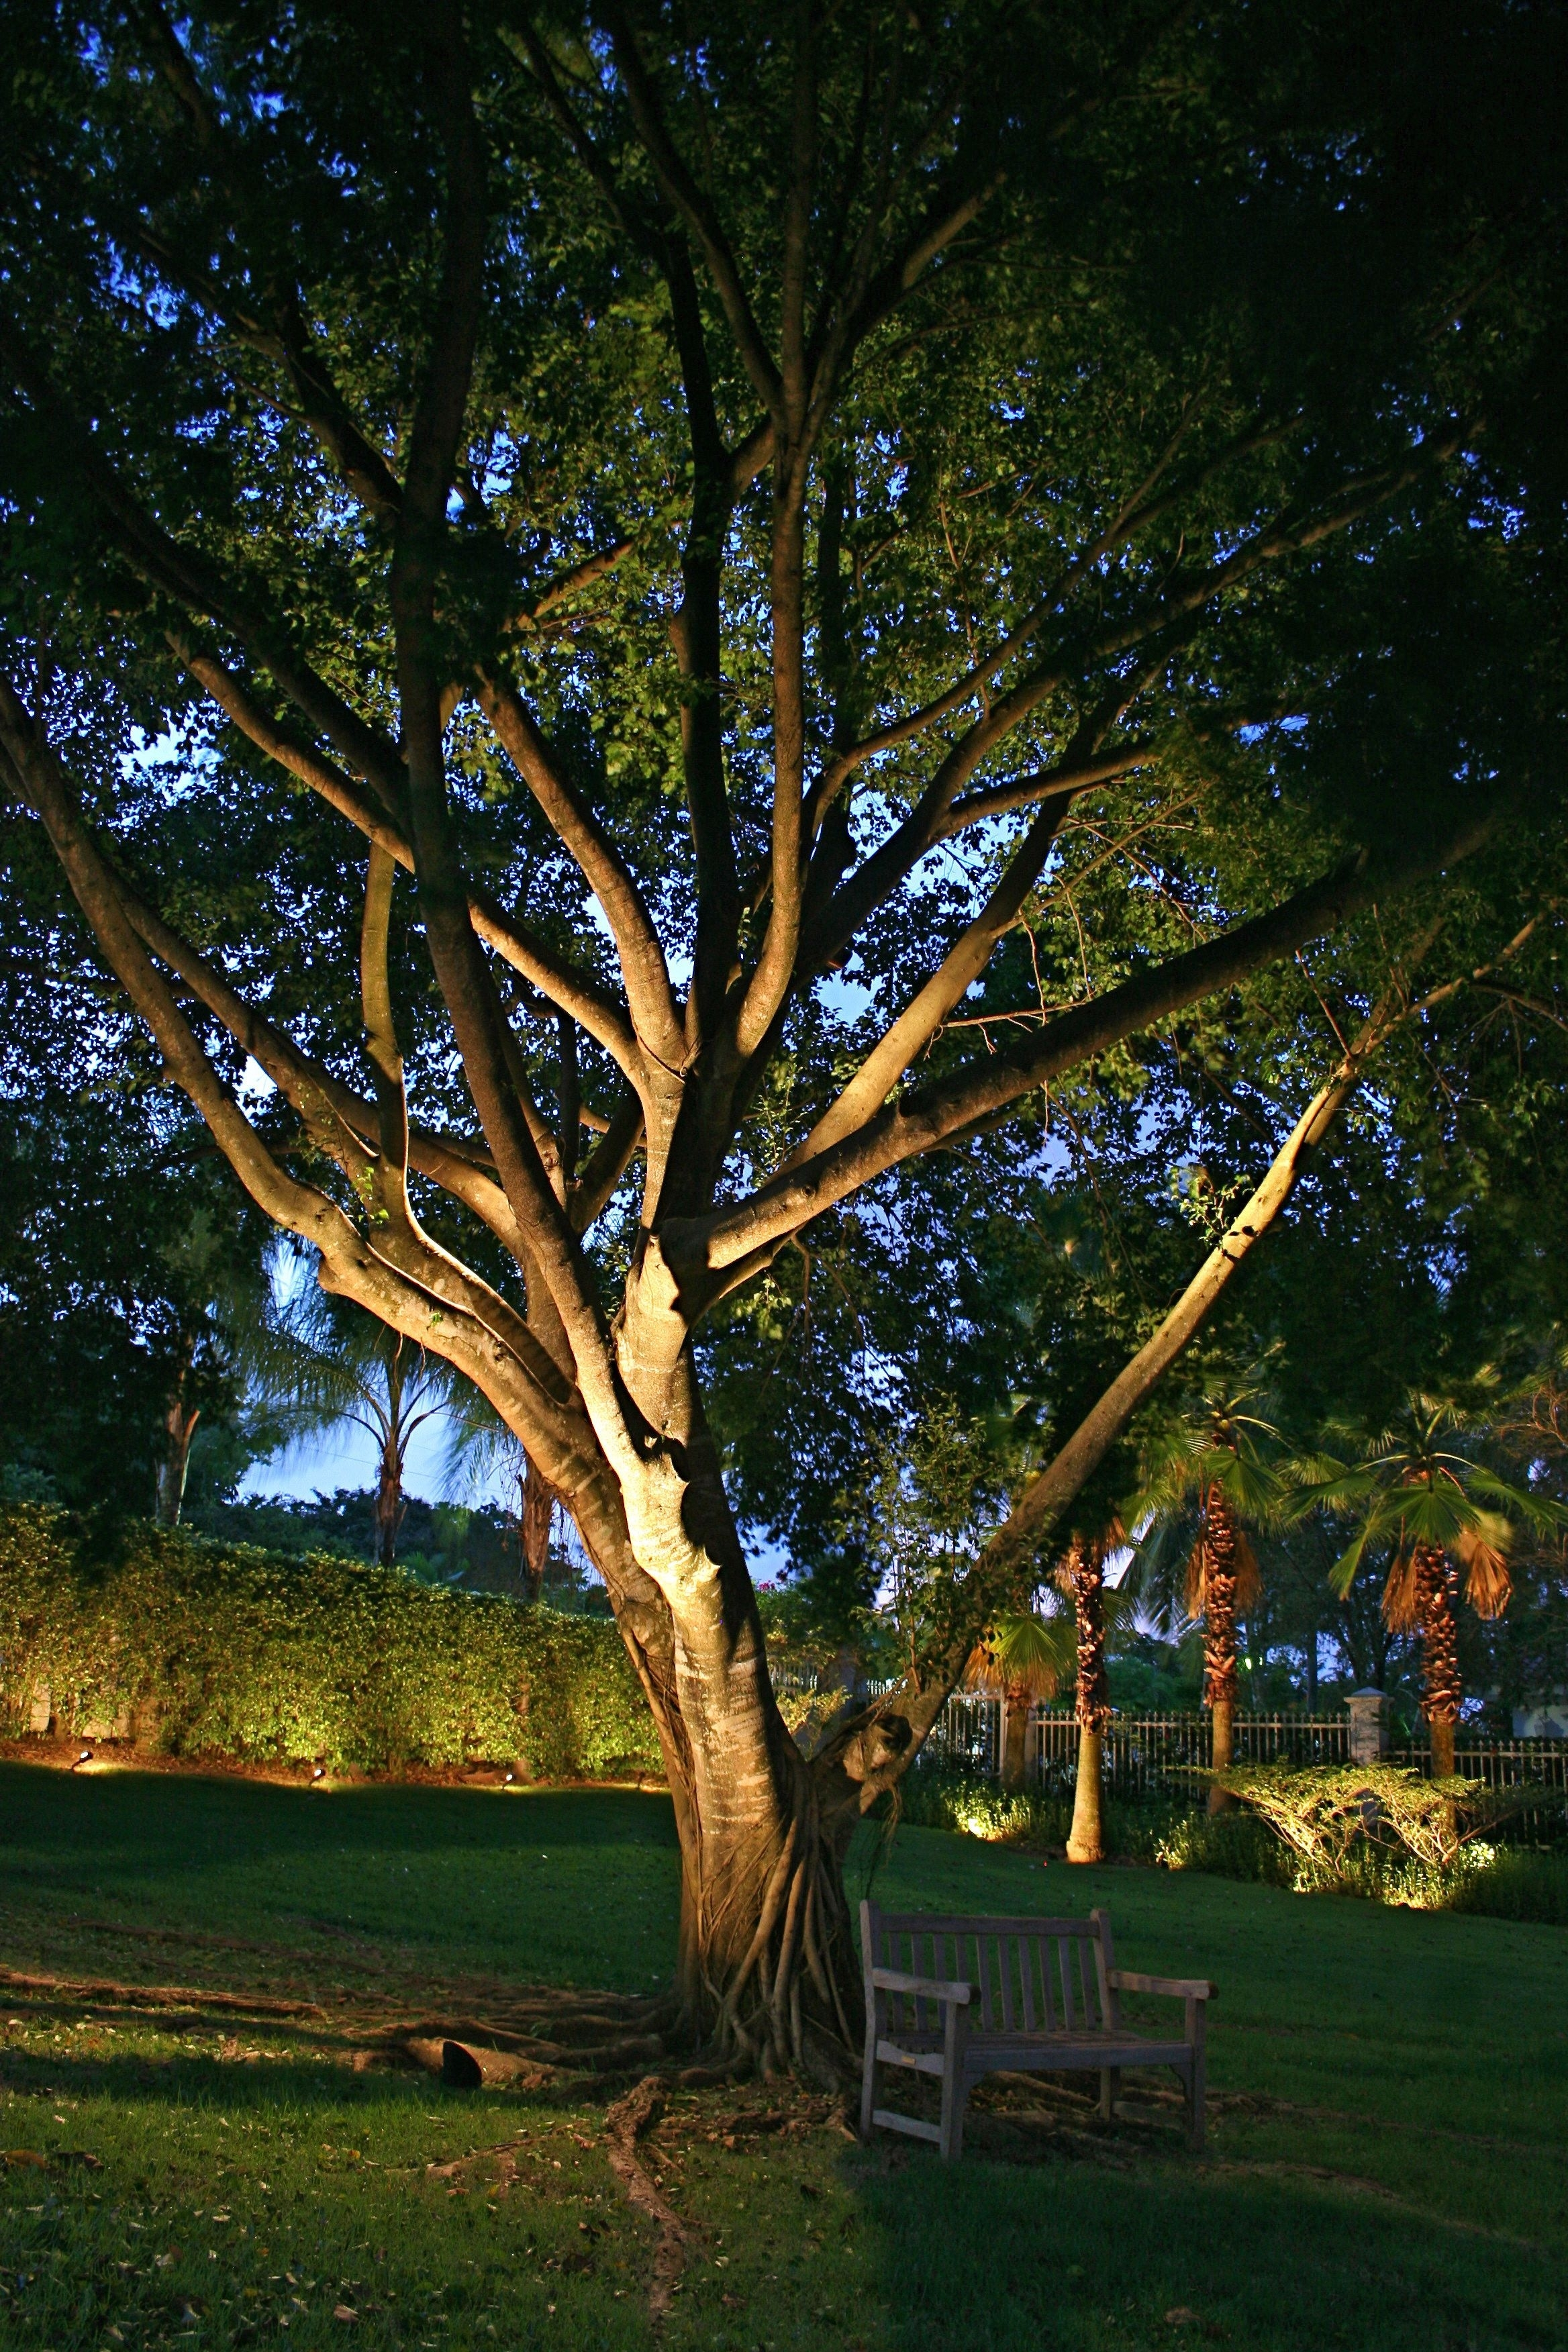 Delectable Outdoor Tree Lights Ideas | Creative Design | Pinterest with regard to Outdoor Lanterns For Trees (Image 7 of 20)